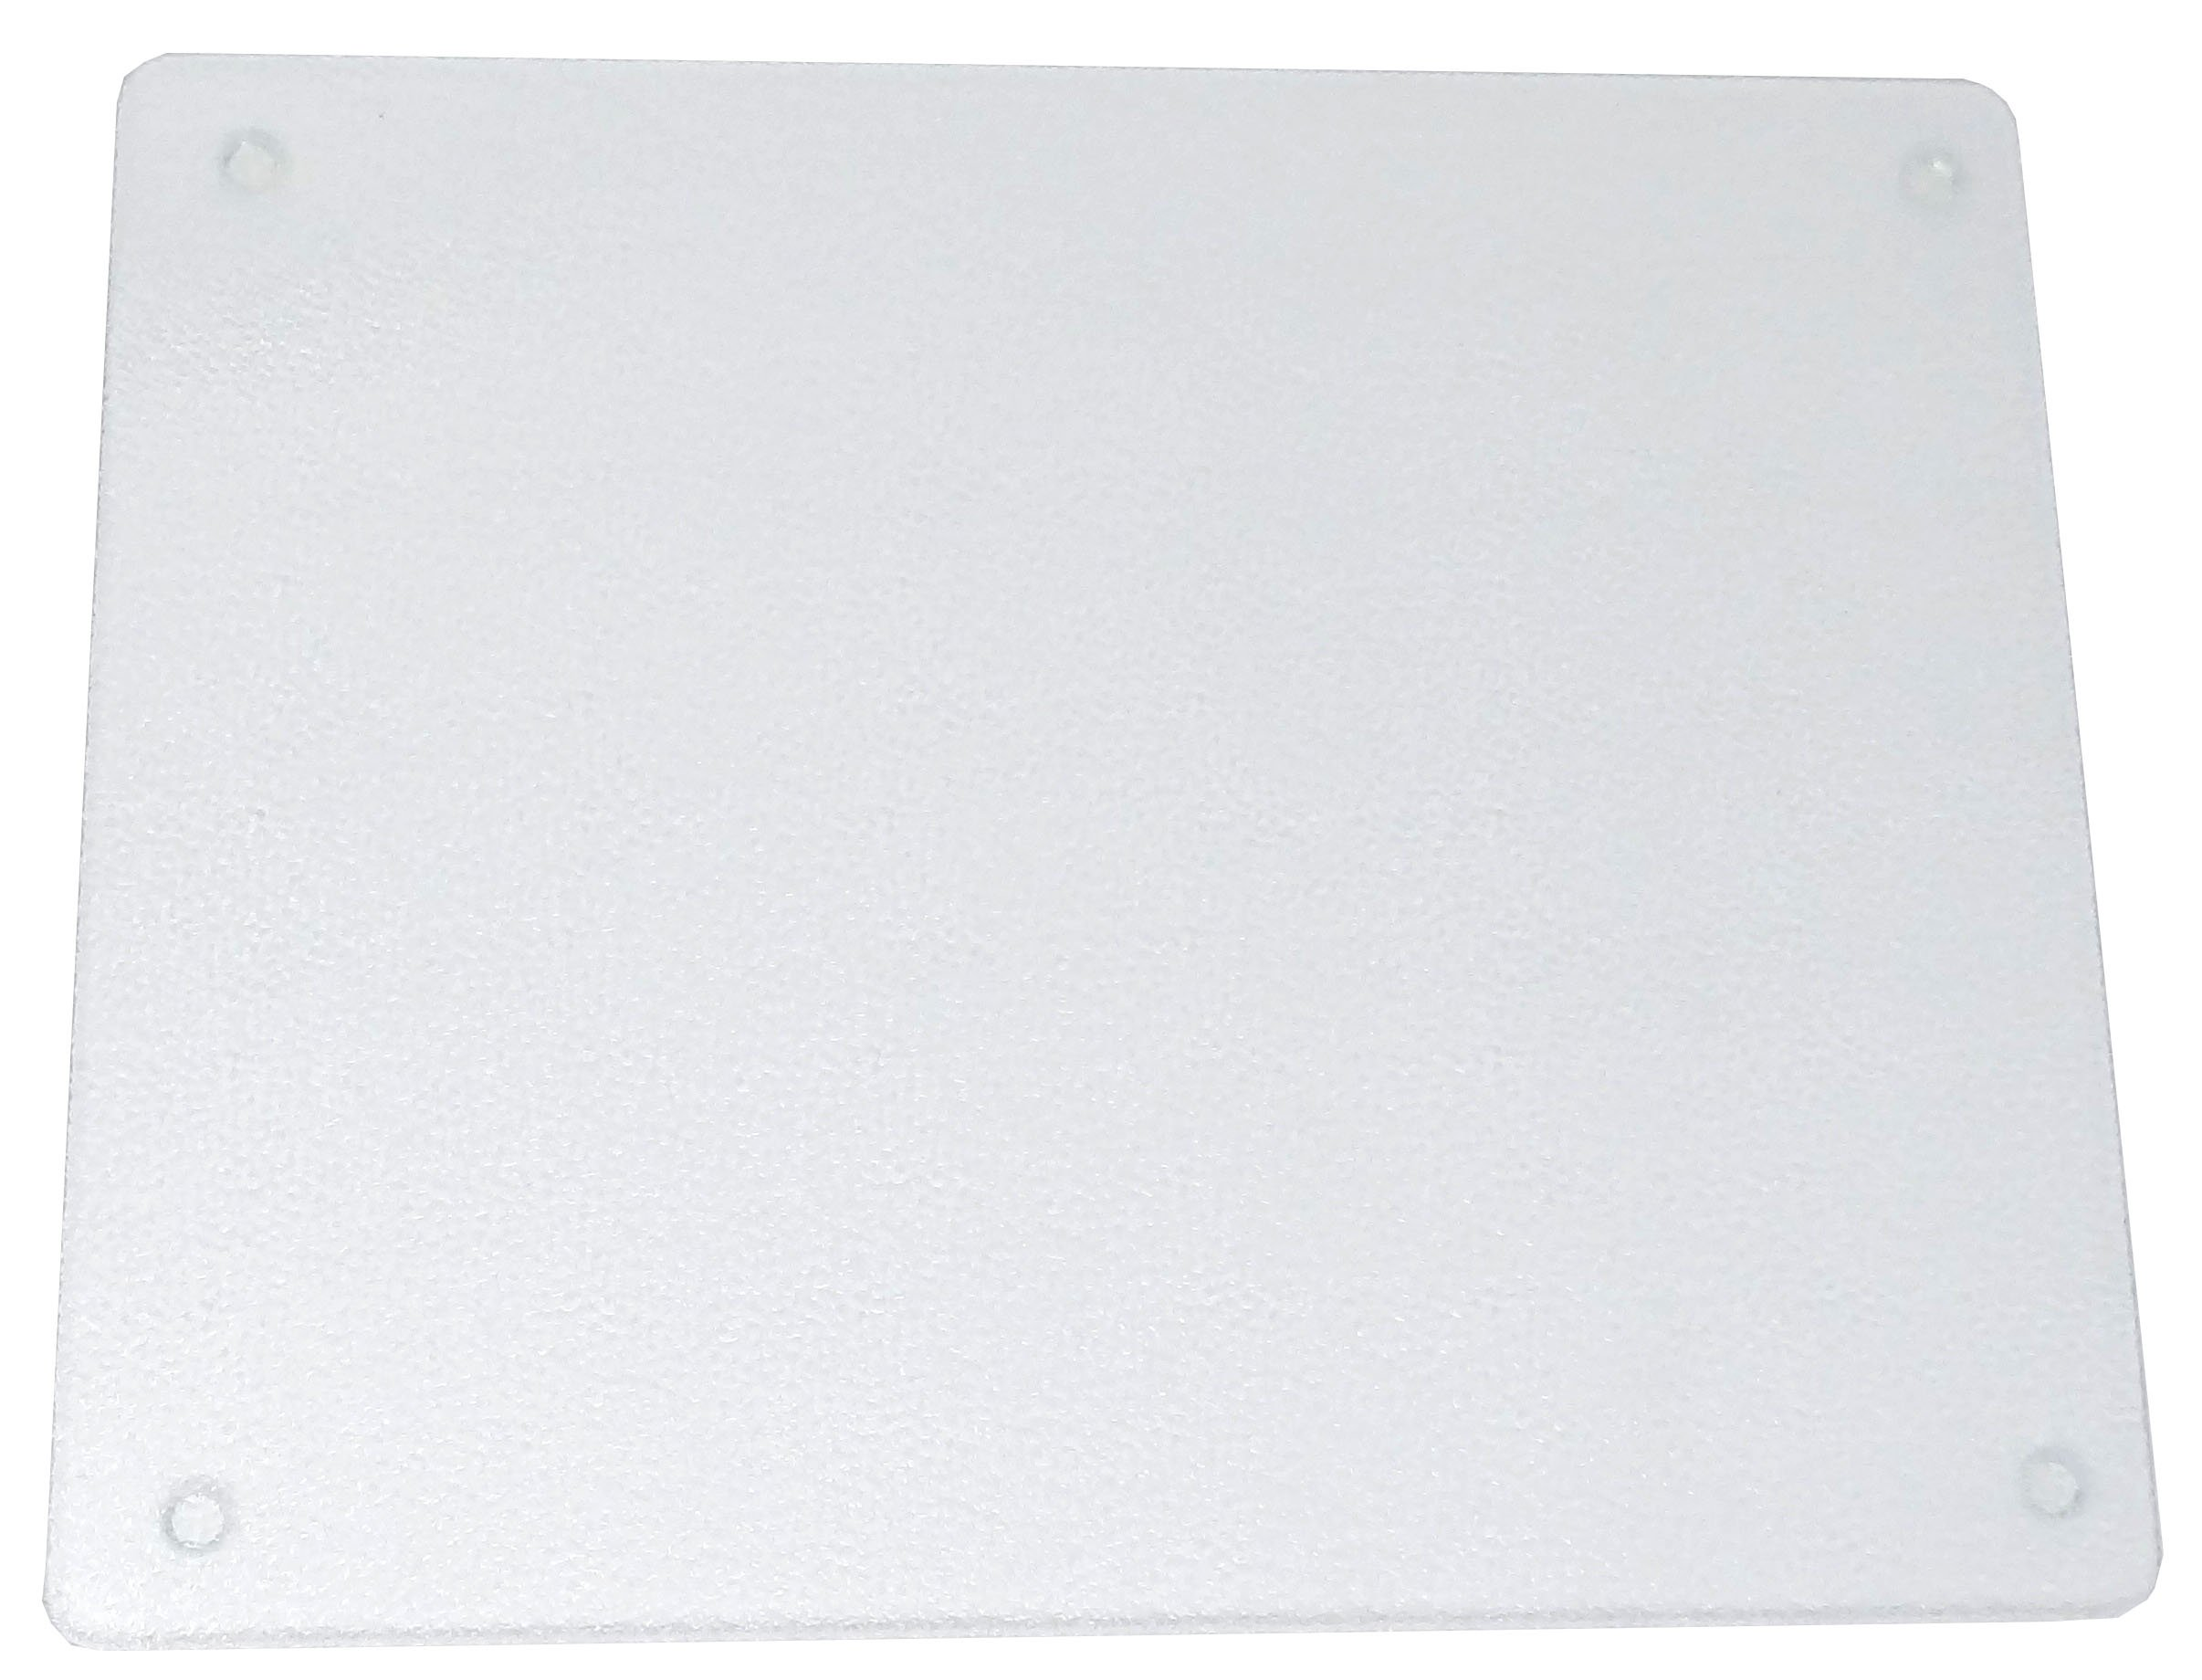 Vance 20 X 16 inch Clear Surface Saver Tempered Glass Cutting Board, 82016C